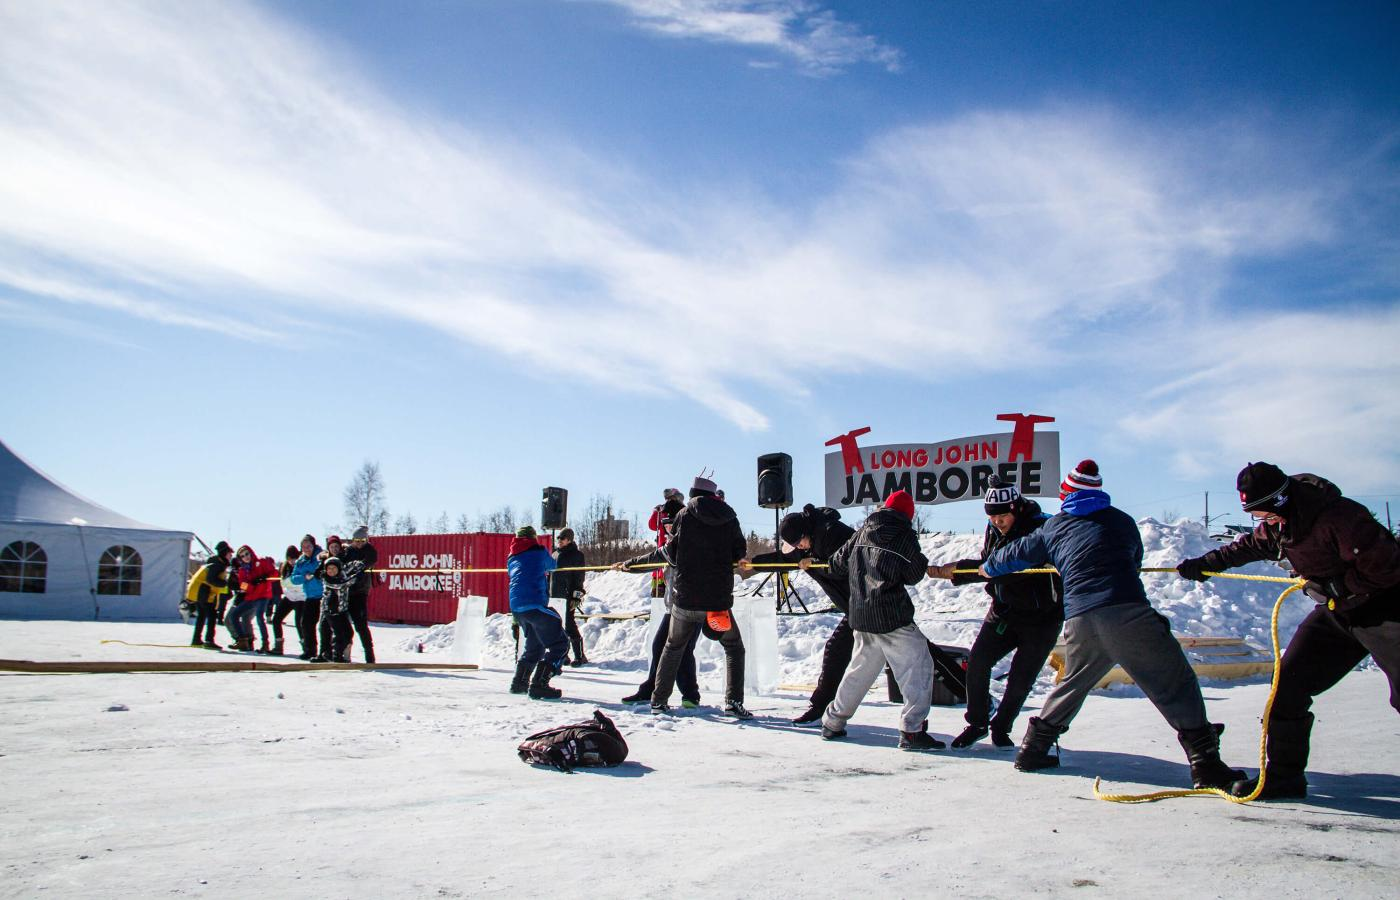 The Long John Jamboree in Yellowknife, Northwest Territories